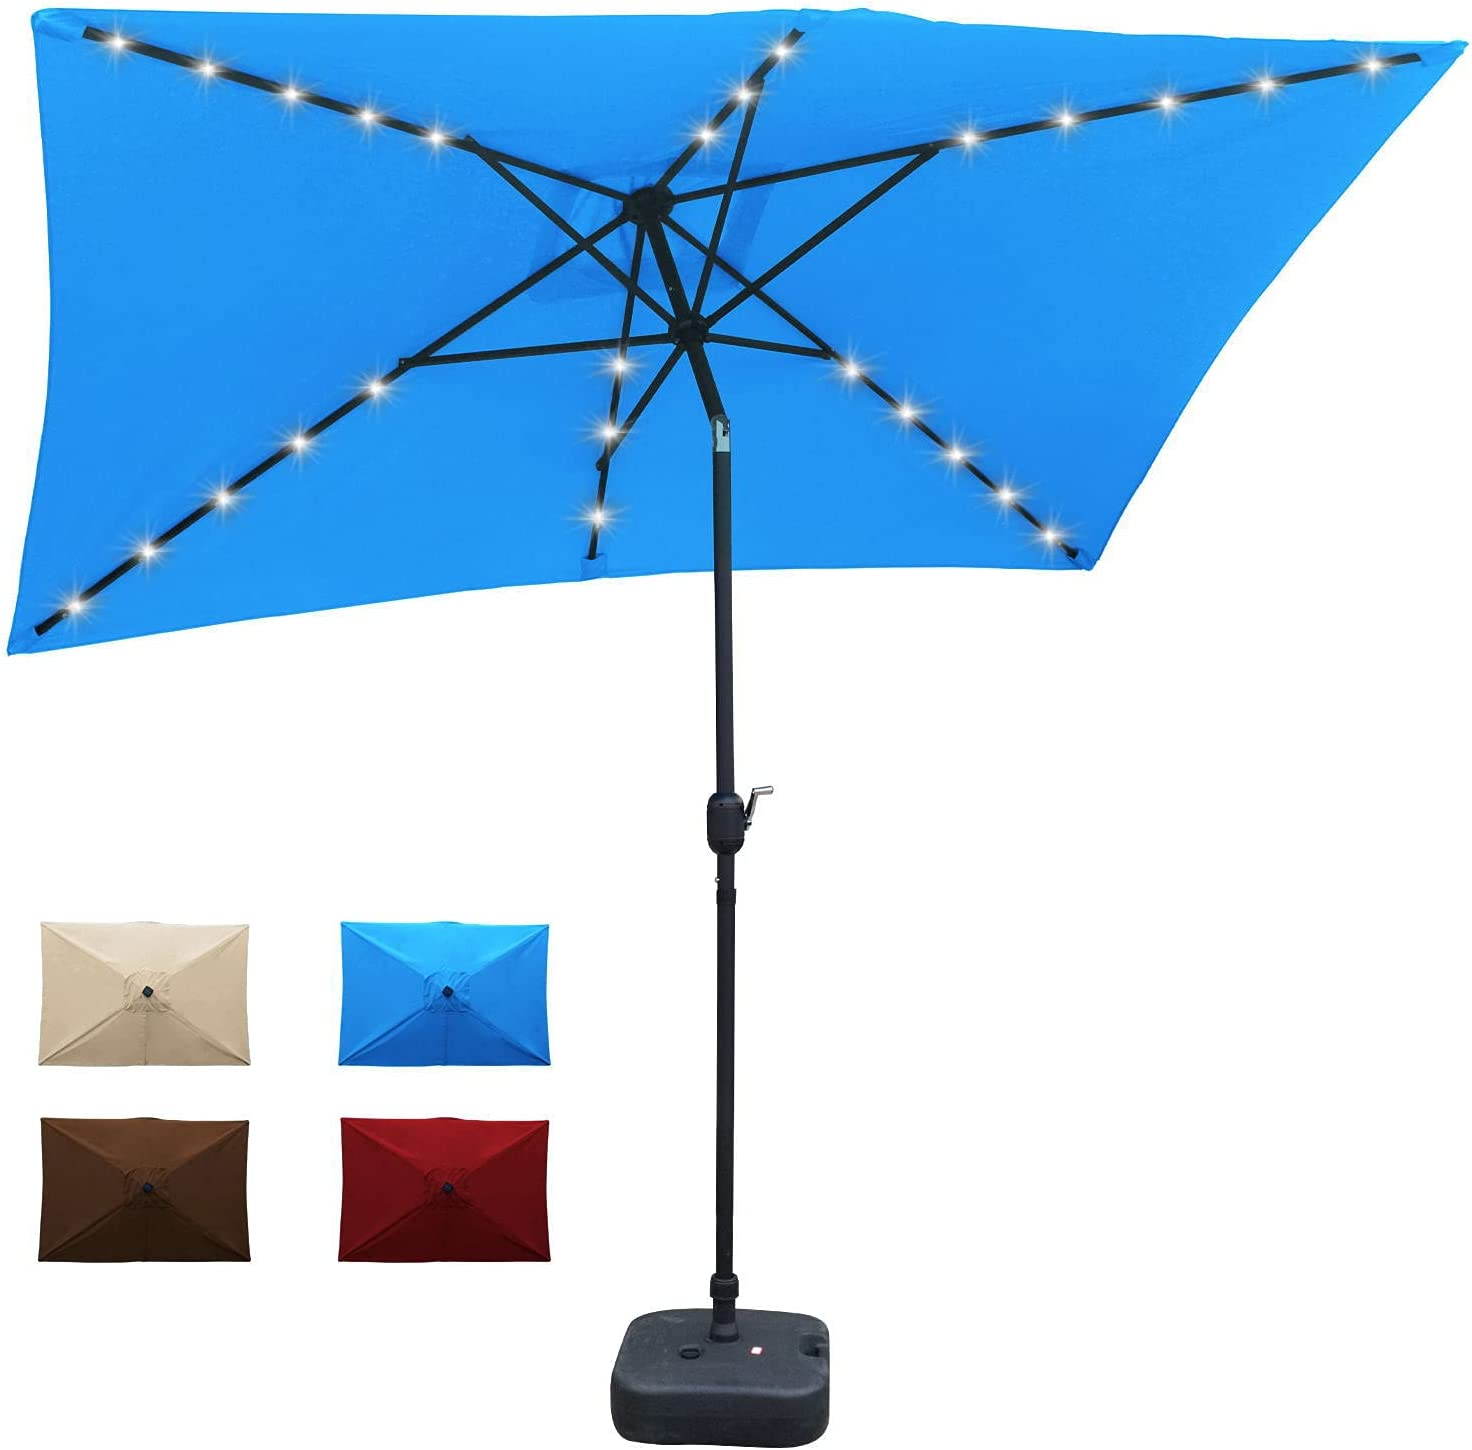 LOVE STORY Max 48% OFF Solar Powered LED Patio Rectang by 35% OFF 6.5 10 ft Umbrella